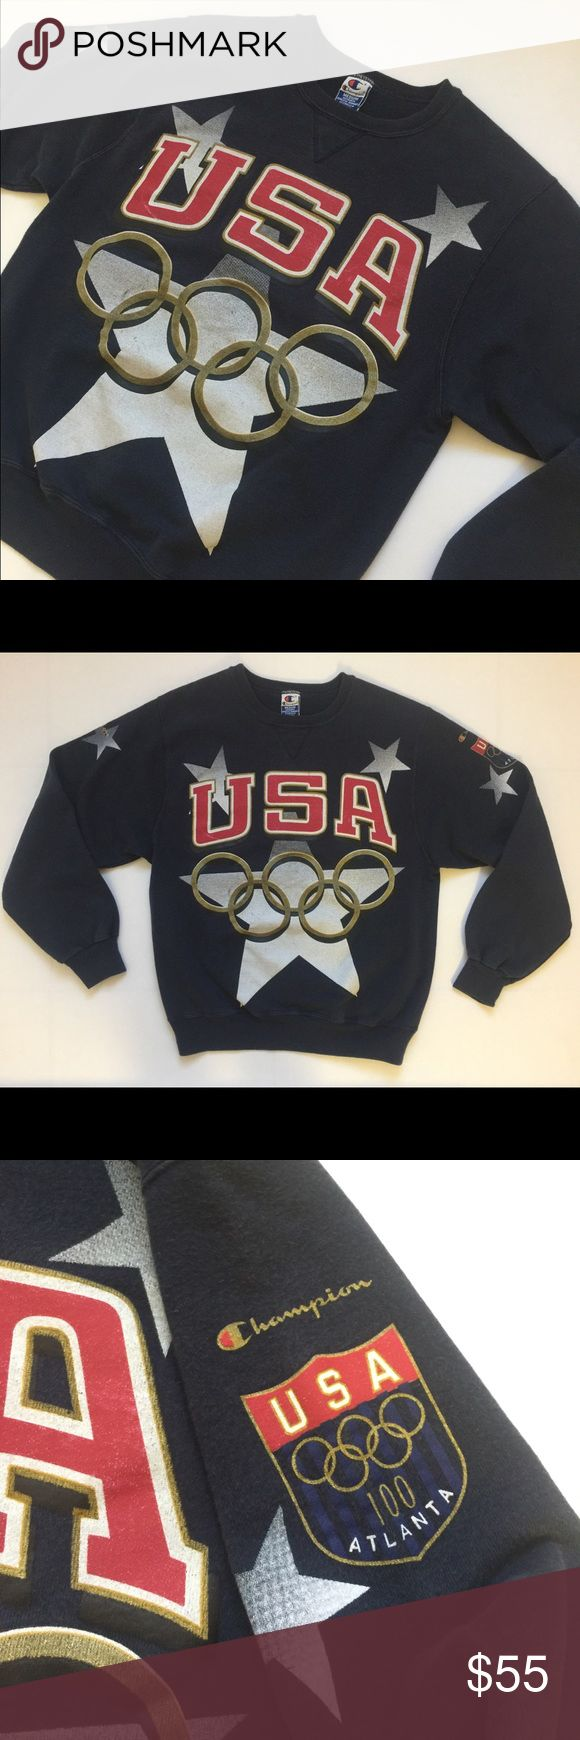 Vtg Champion Sweatshirt 1996 Olympics USA Vintage Champion brand Sweatshirt from the 1996 Olympics in Atlanta for TEAM USA THE DREAM TEAM. Men's Medium. Awesome design on the front and both sleeves. It is in good condition. Shipping same day or next day! Champion Sweaters Crewneck